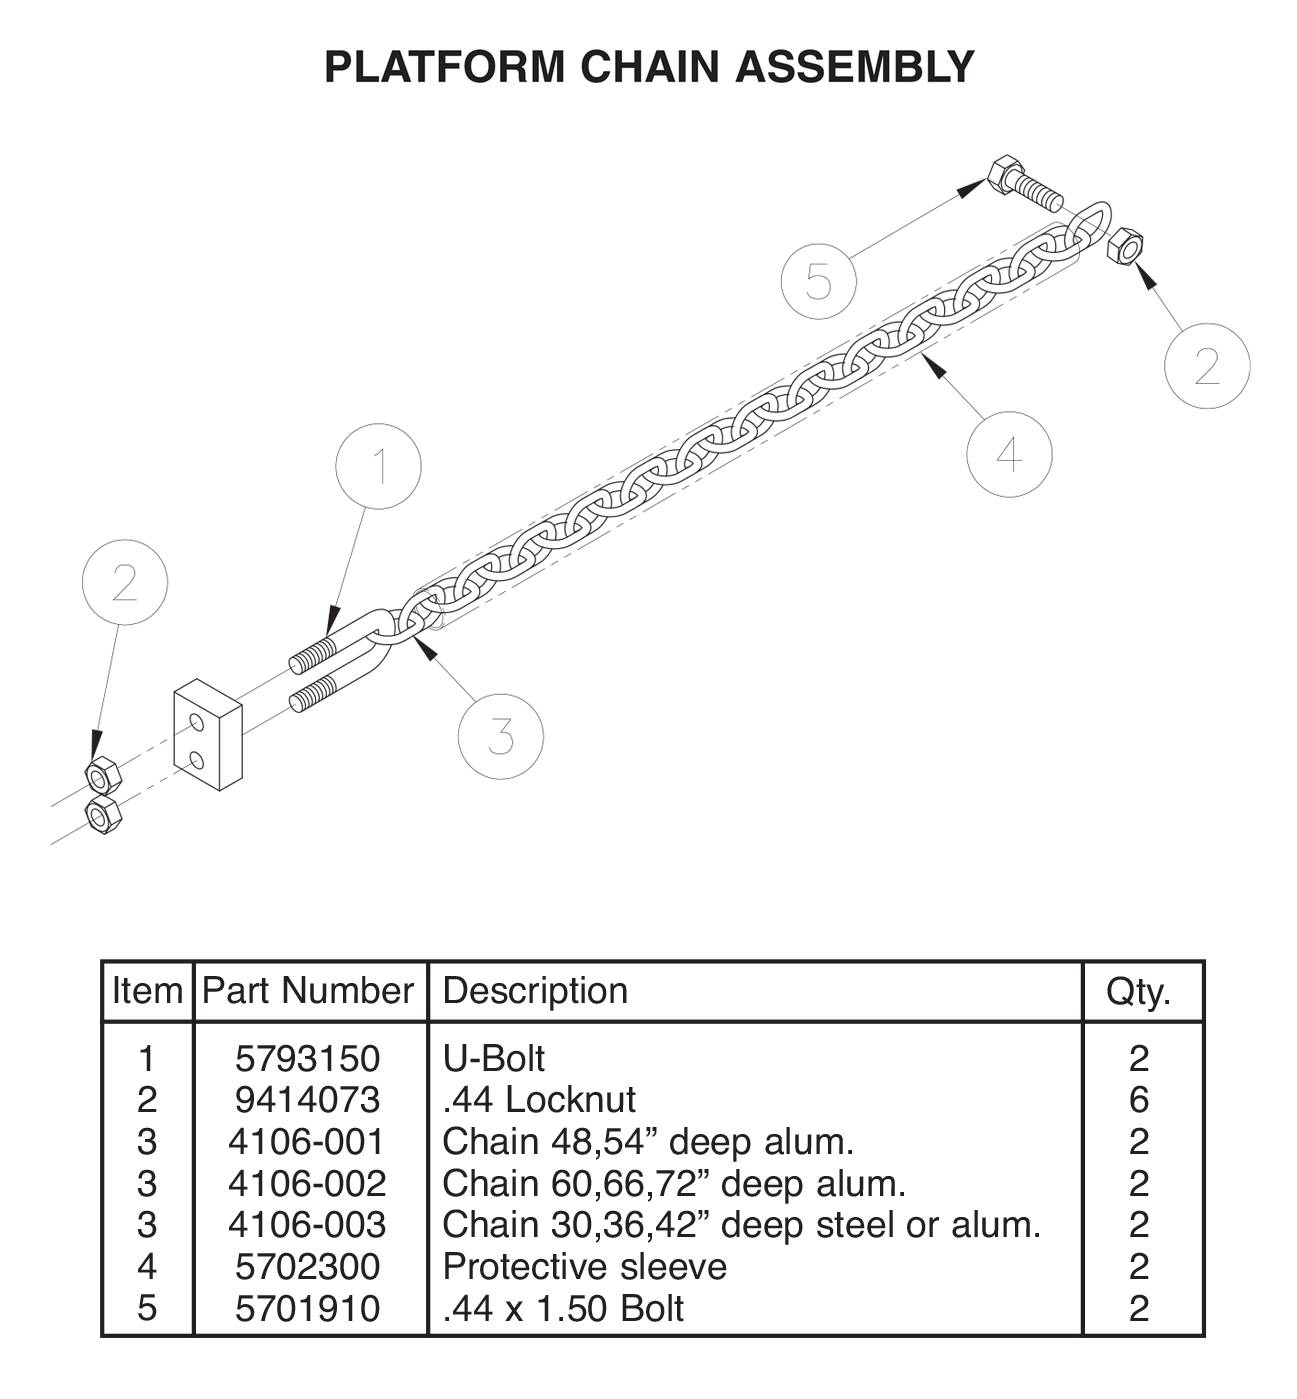 TVLR 30/30A Platform Chain Assembly Diagram